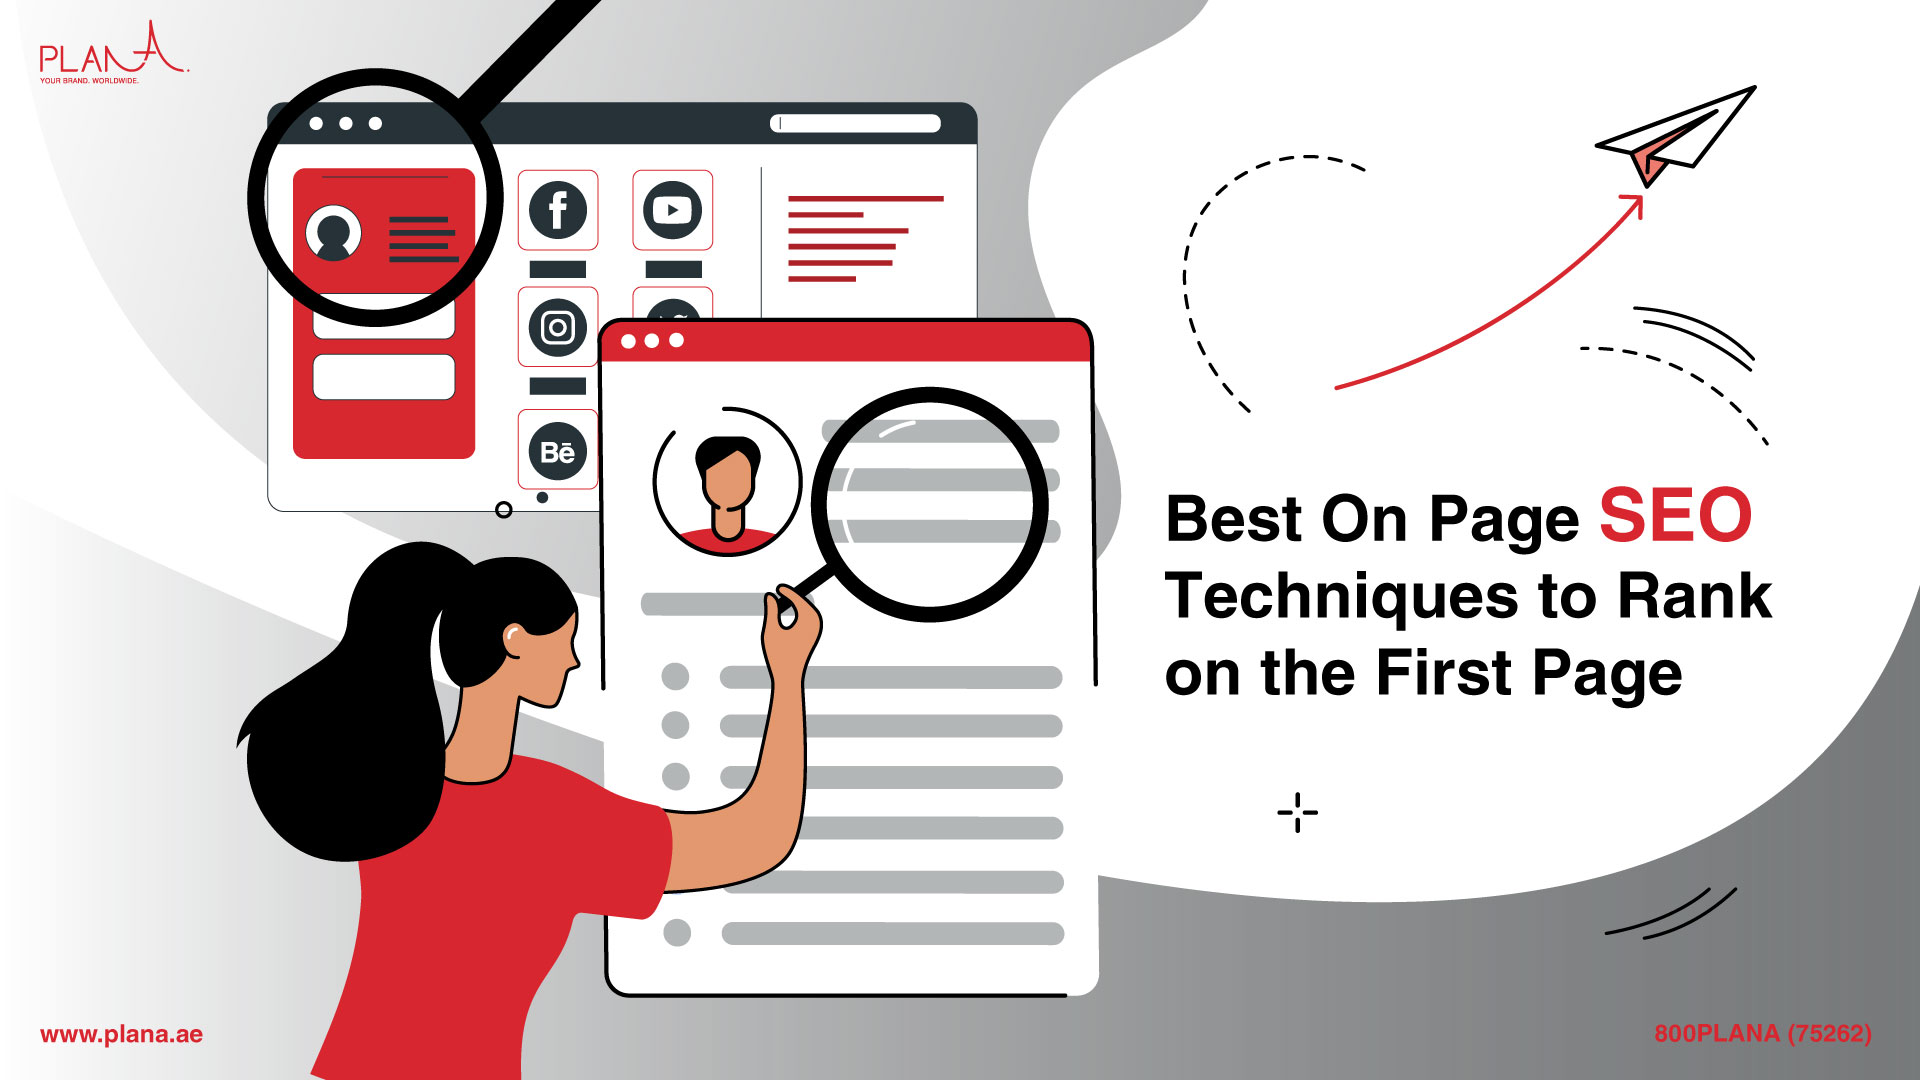 Best On Page SEO Techniques to Rank on the First Page